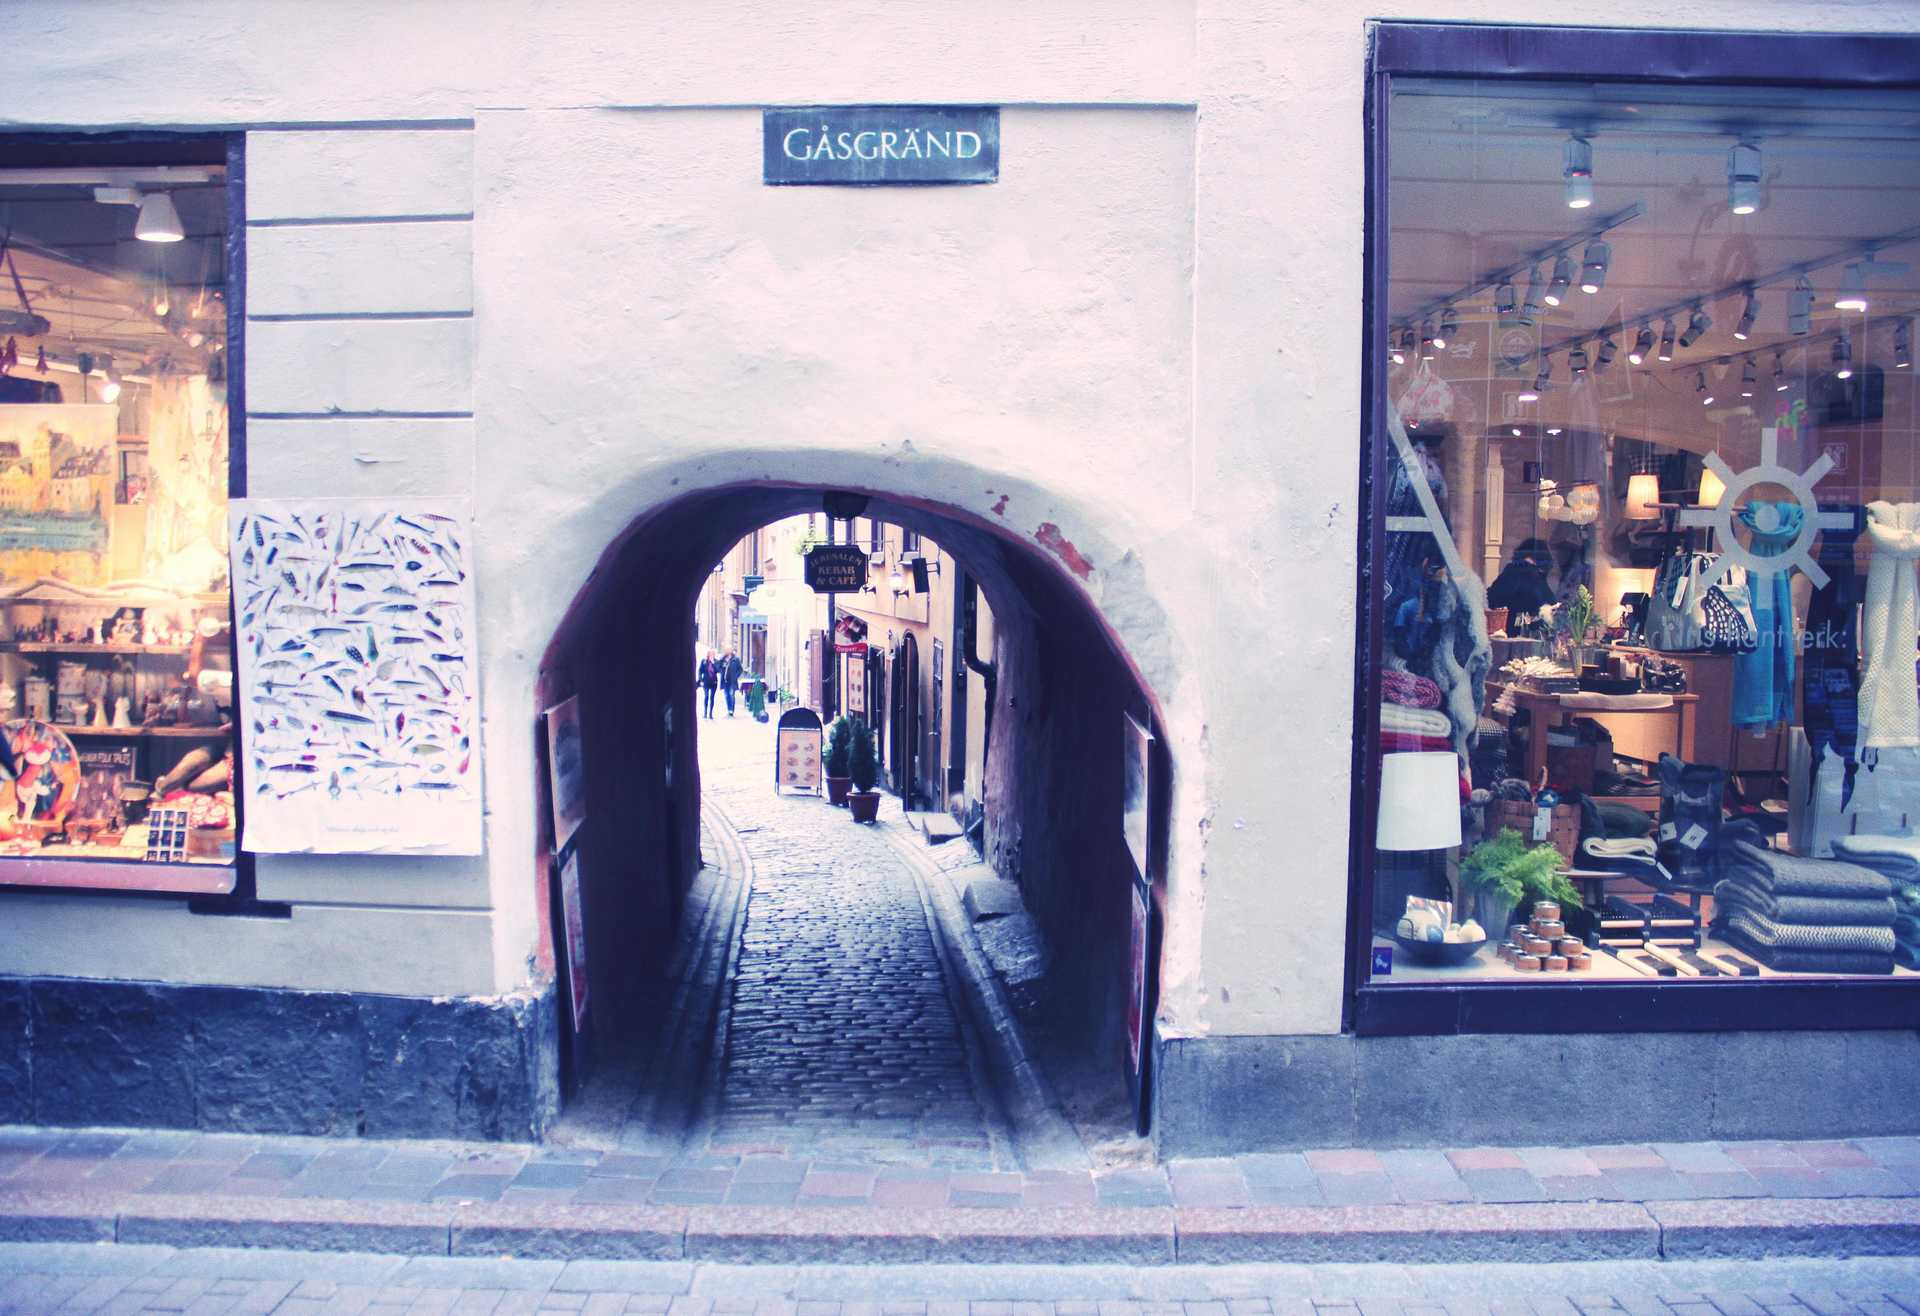 Stockholm-day-2-visit-europe-nunaavane-haircare-beauty-blogger6.JPG_effected